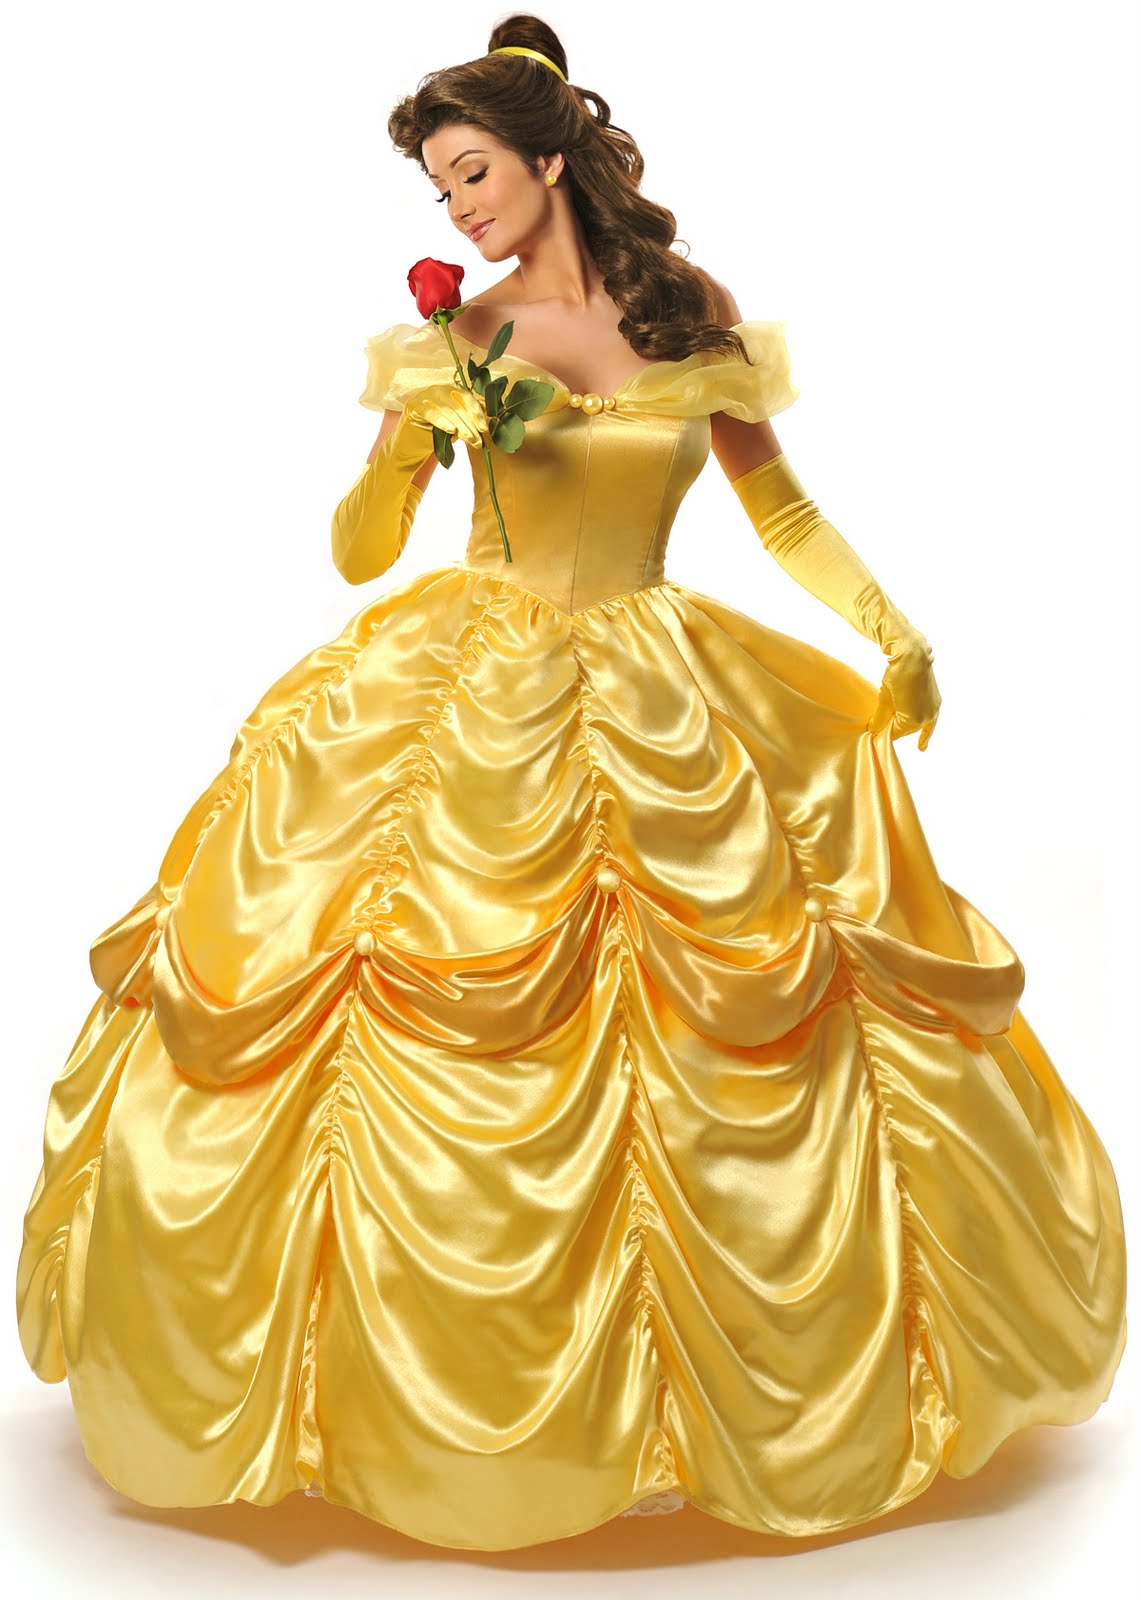 Real Princess Belle